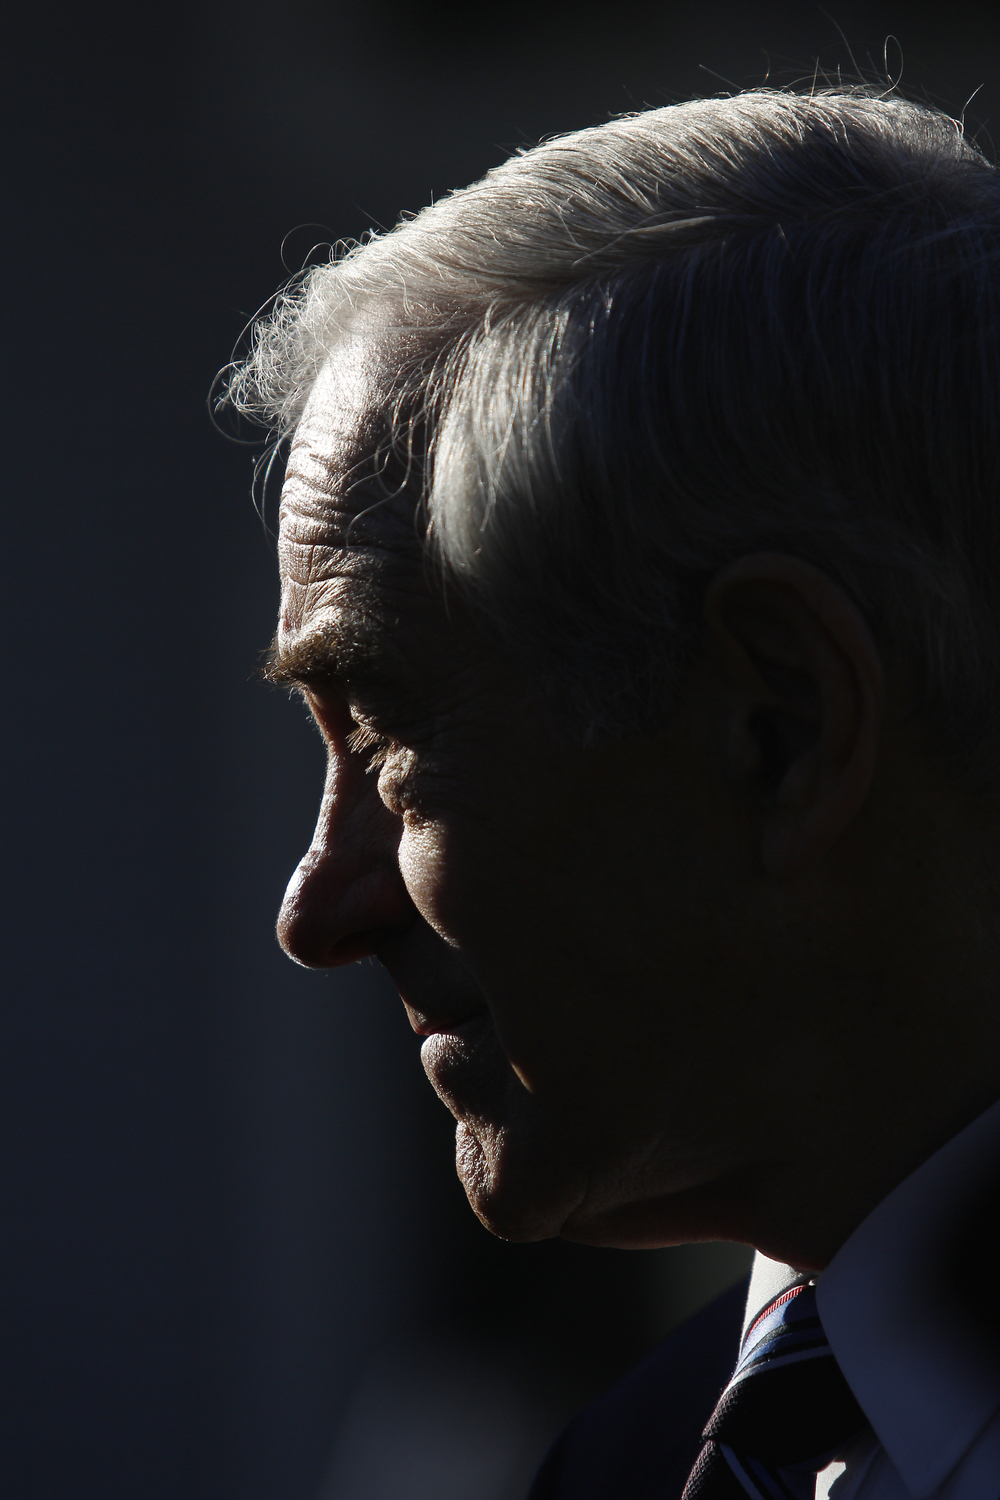 Ron Paul 12-01-11 34 USM.jpg